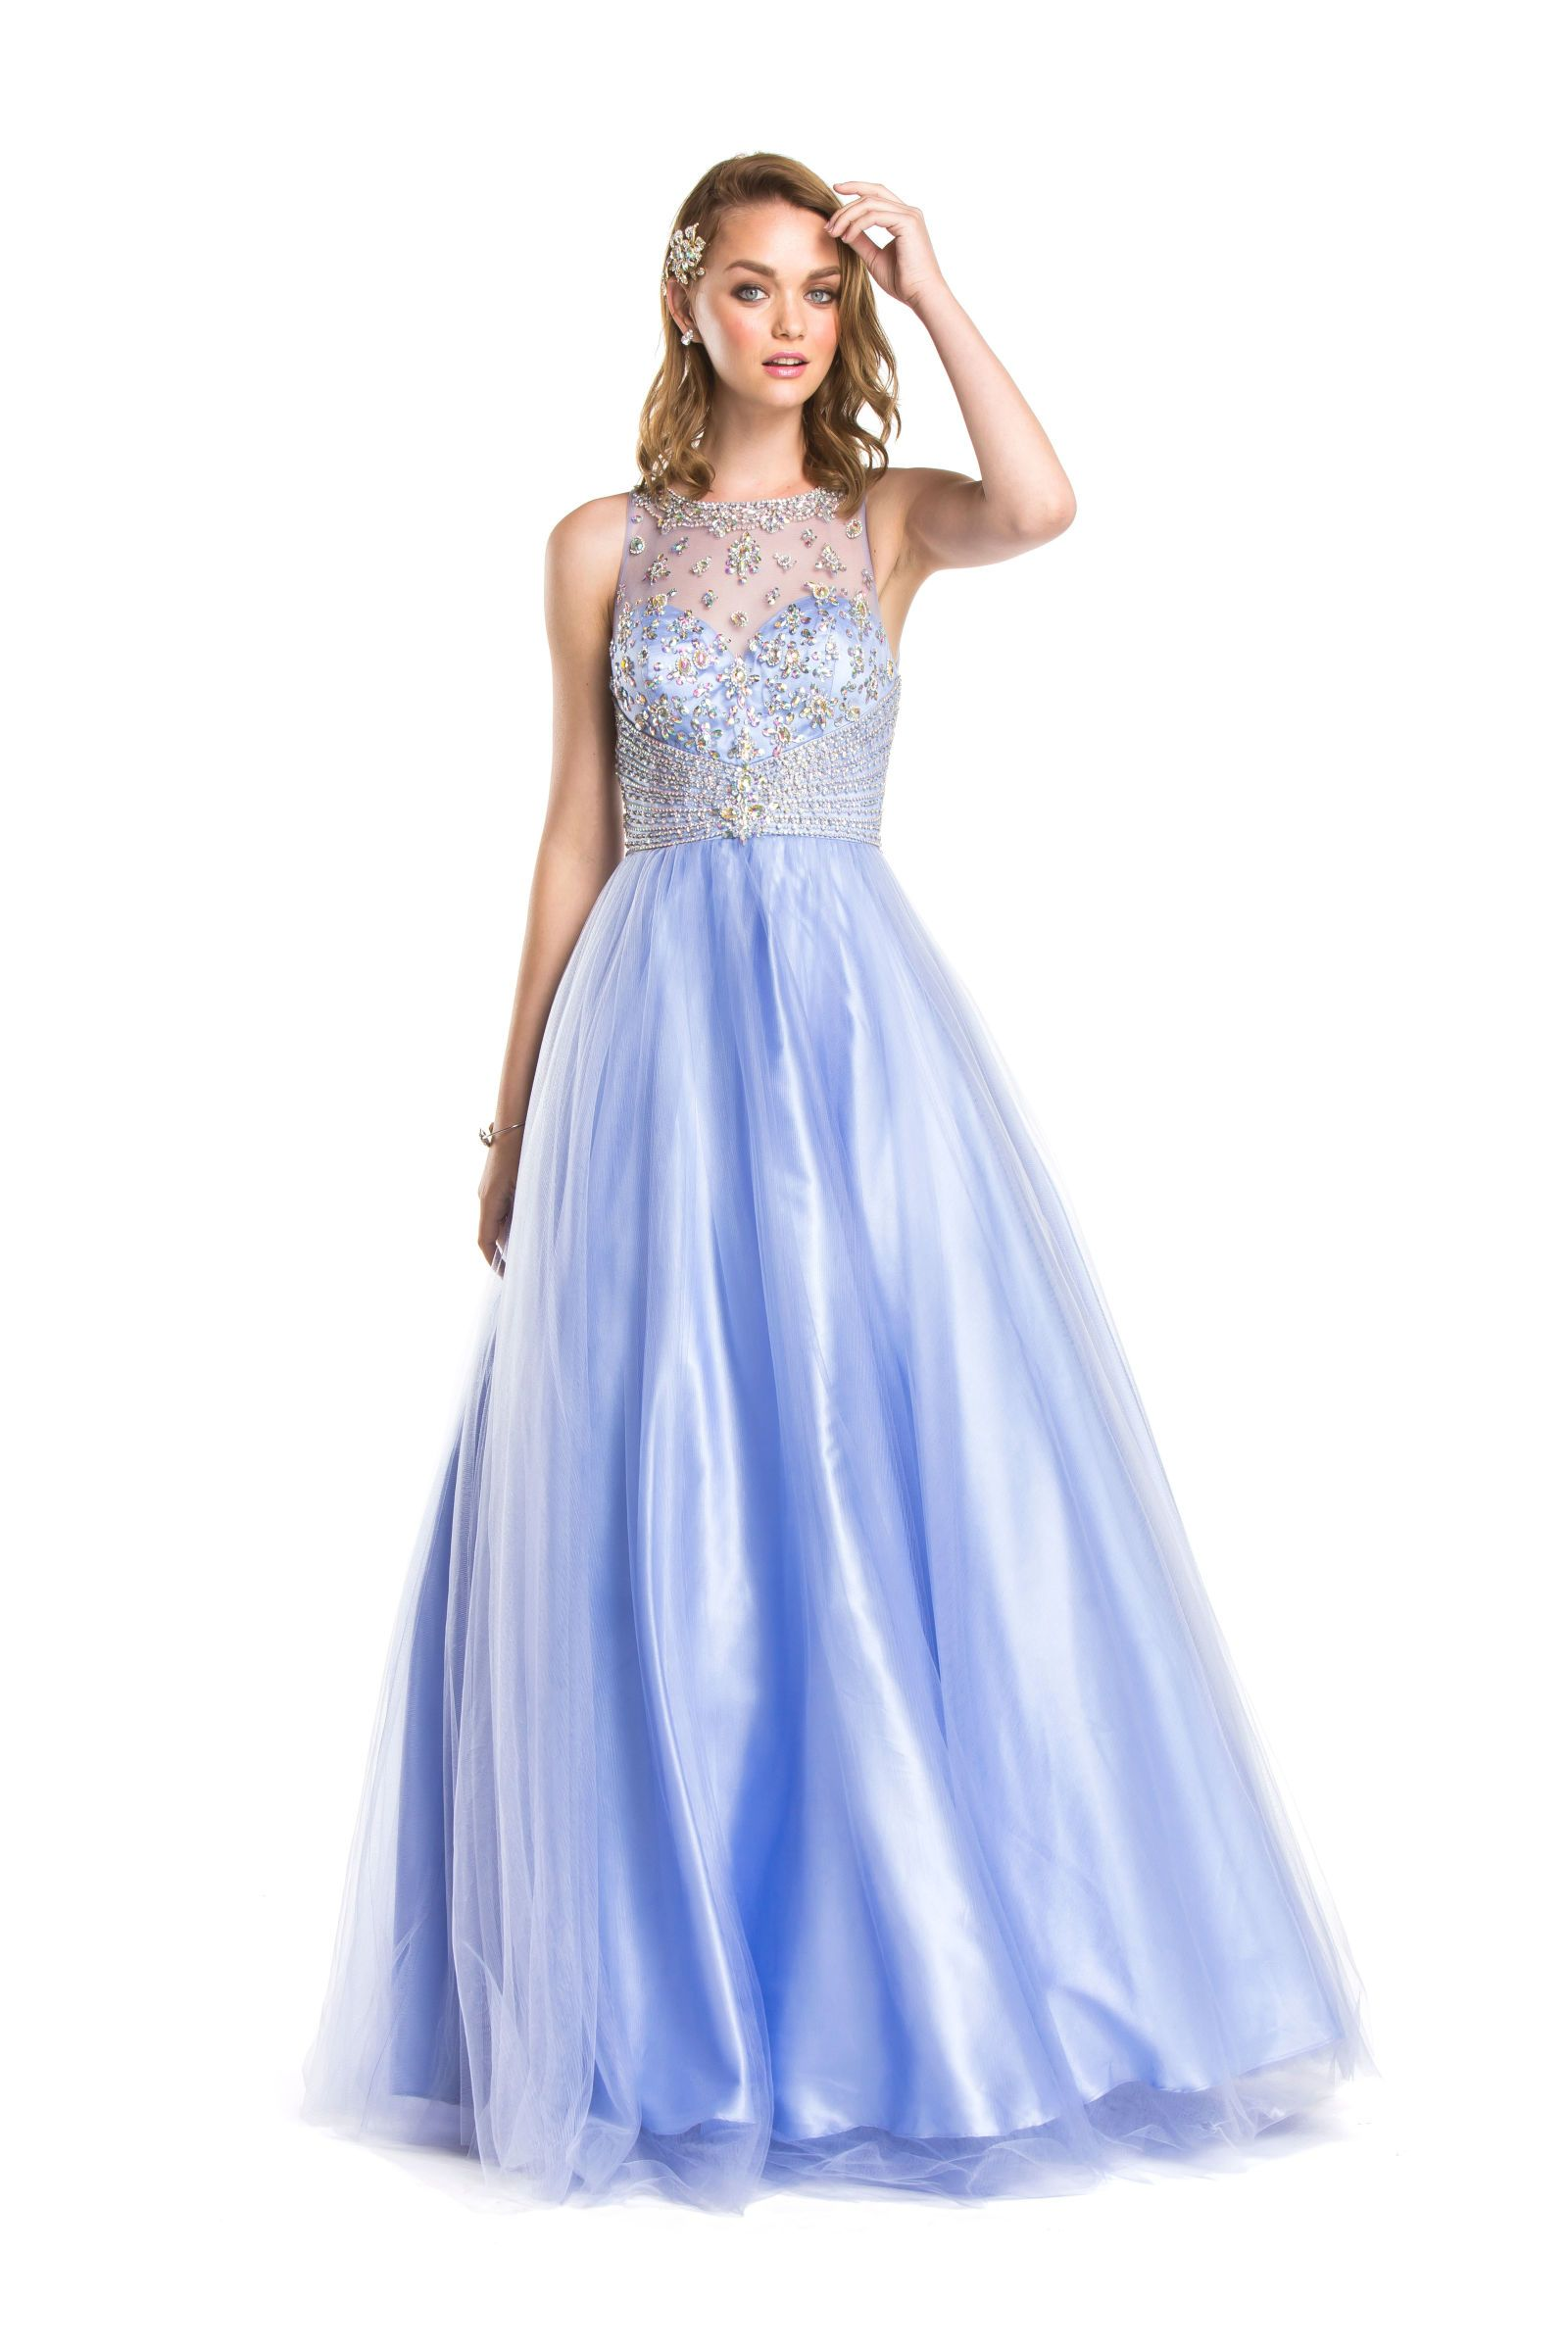 8 Ball Gowns That Will Make You Feel Like A Princess On Prom | Ball ...